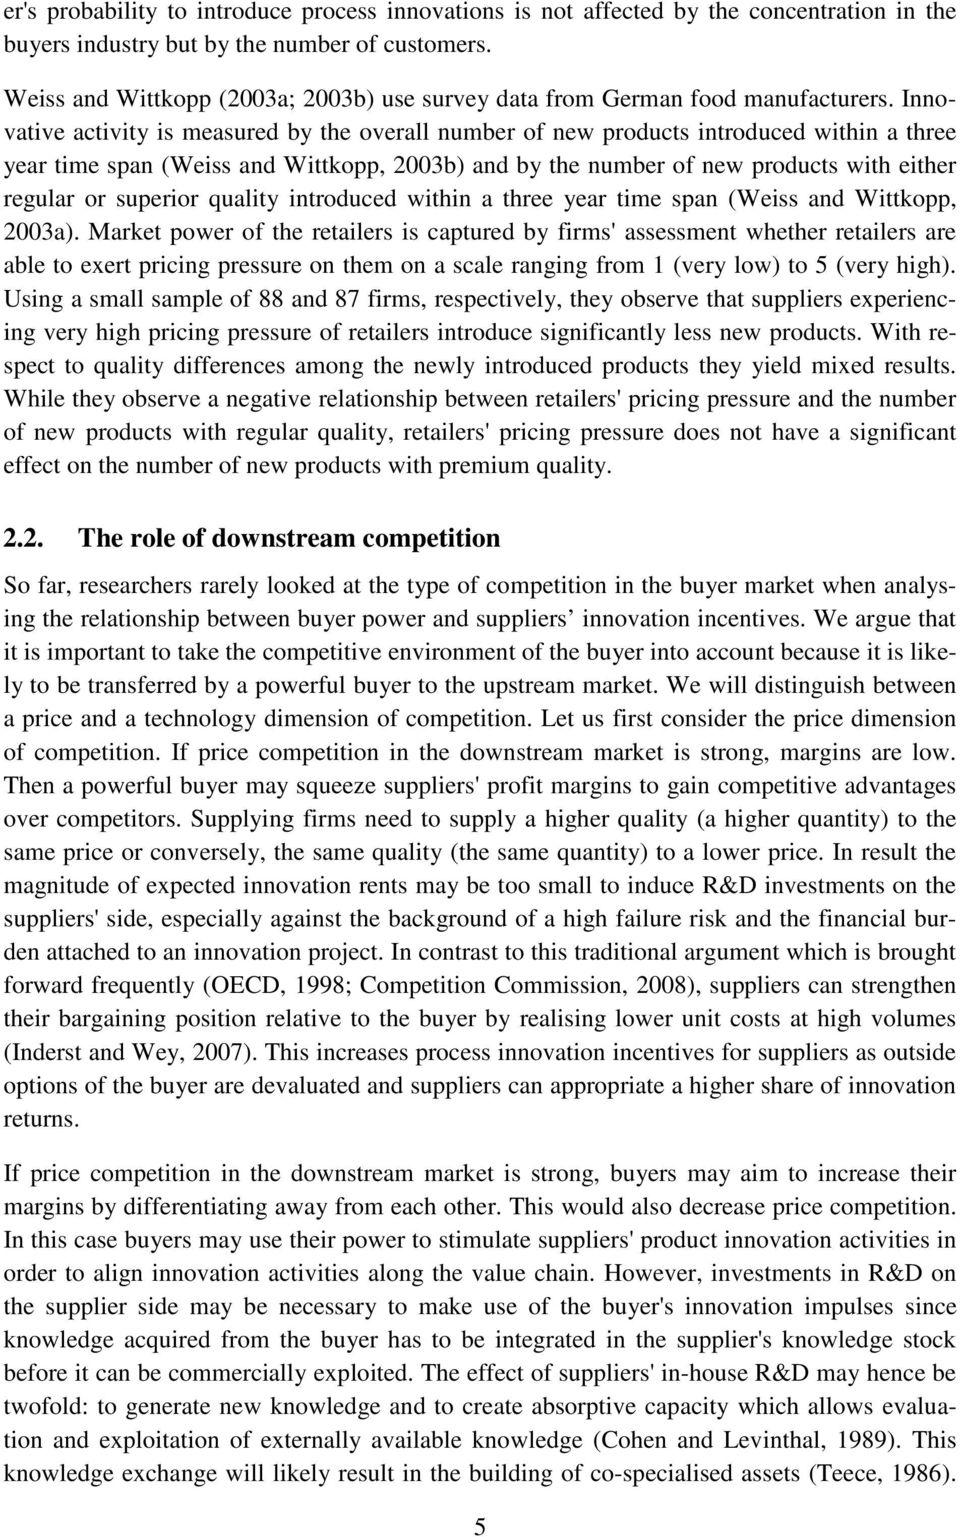 Innovtive ctivity is mesured by the overll number of new products introduced within three yer time spn (Weiss nd Wittkopp, 2003b) nd by the number of new products with either regulr or superior